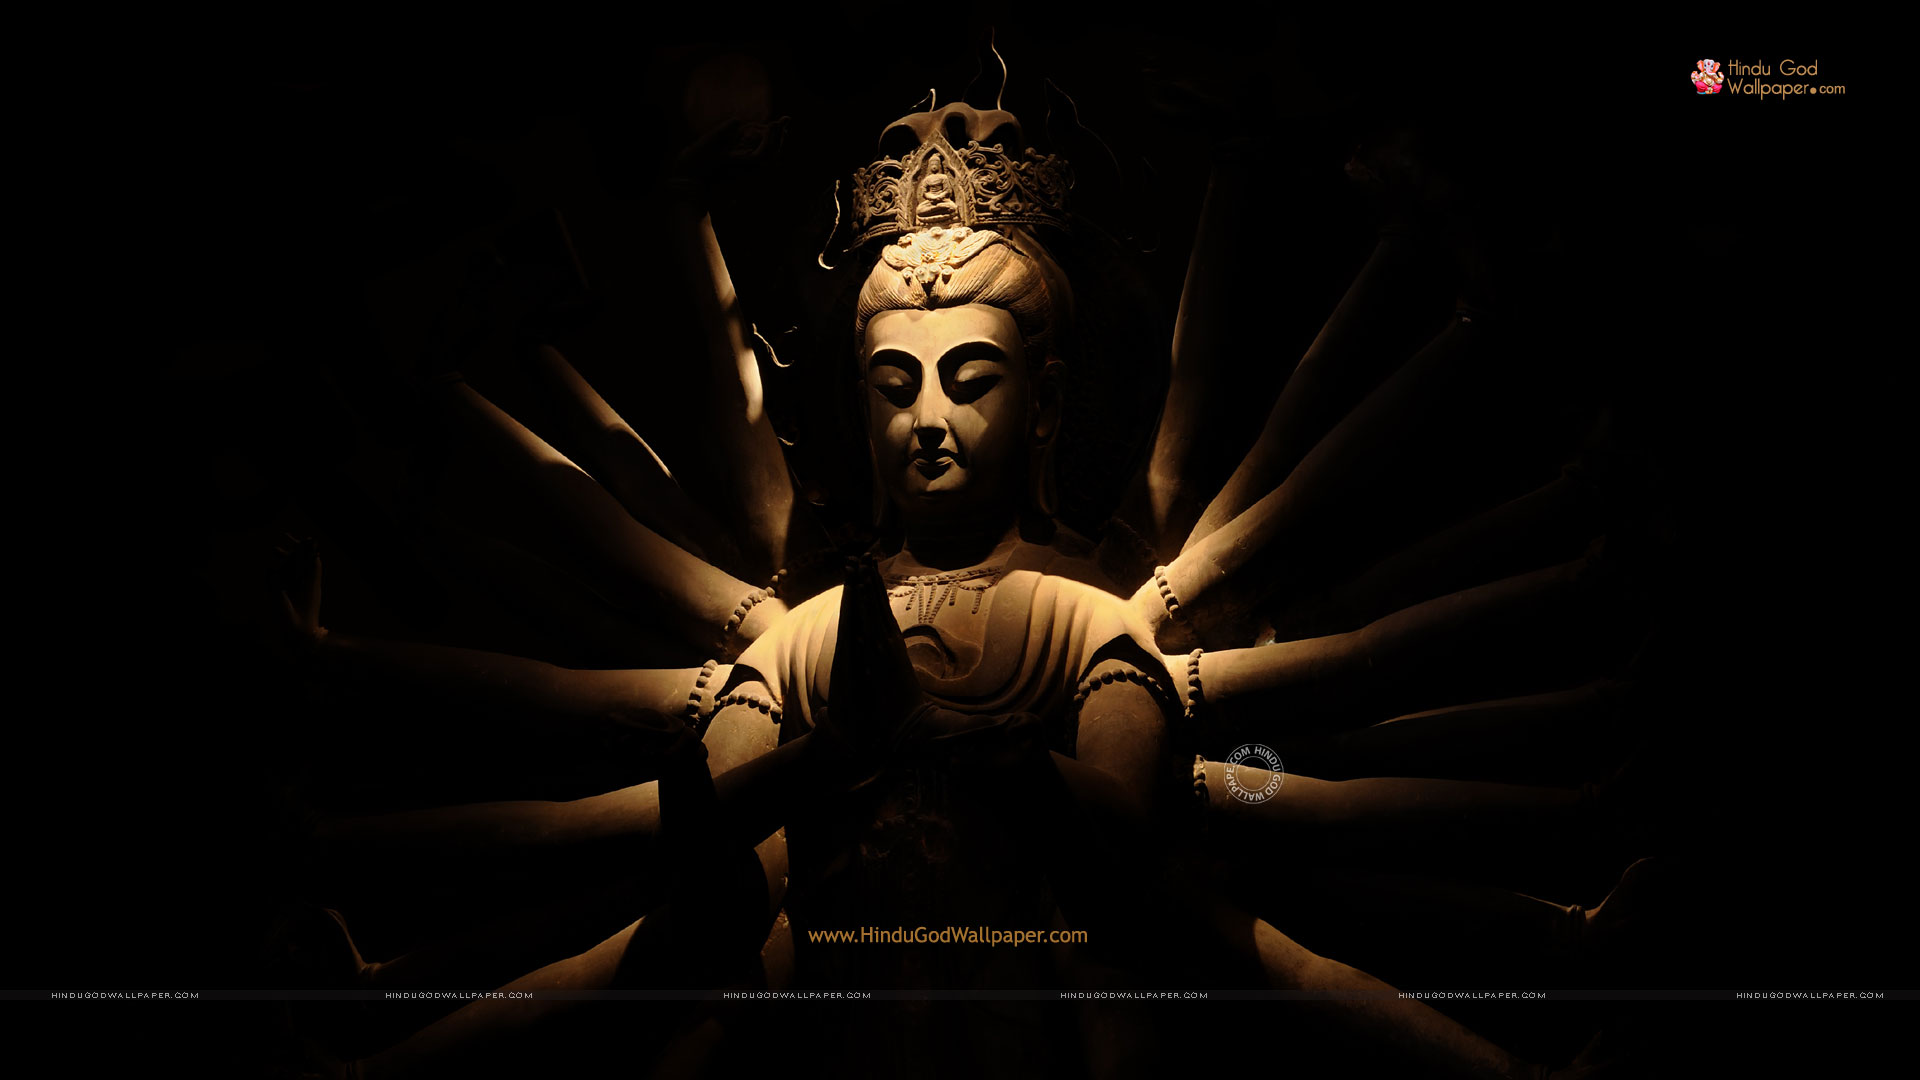 buddha wallpapers hd 1080p full size widescreen download